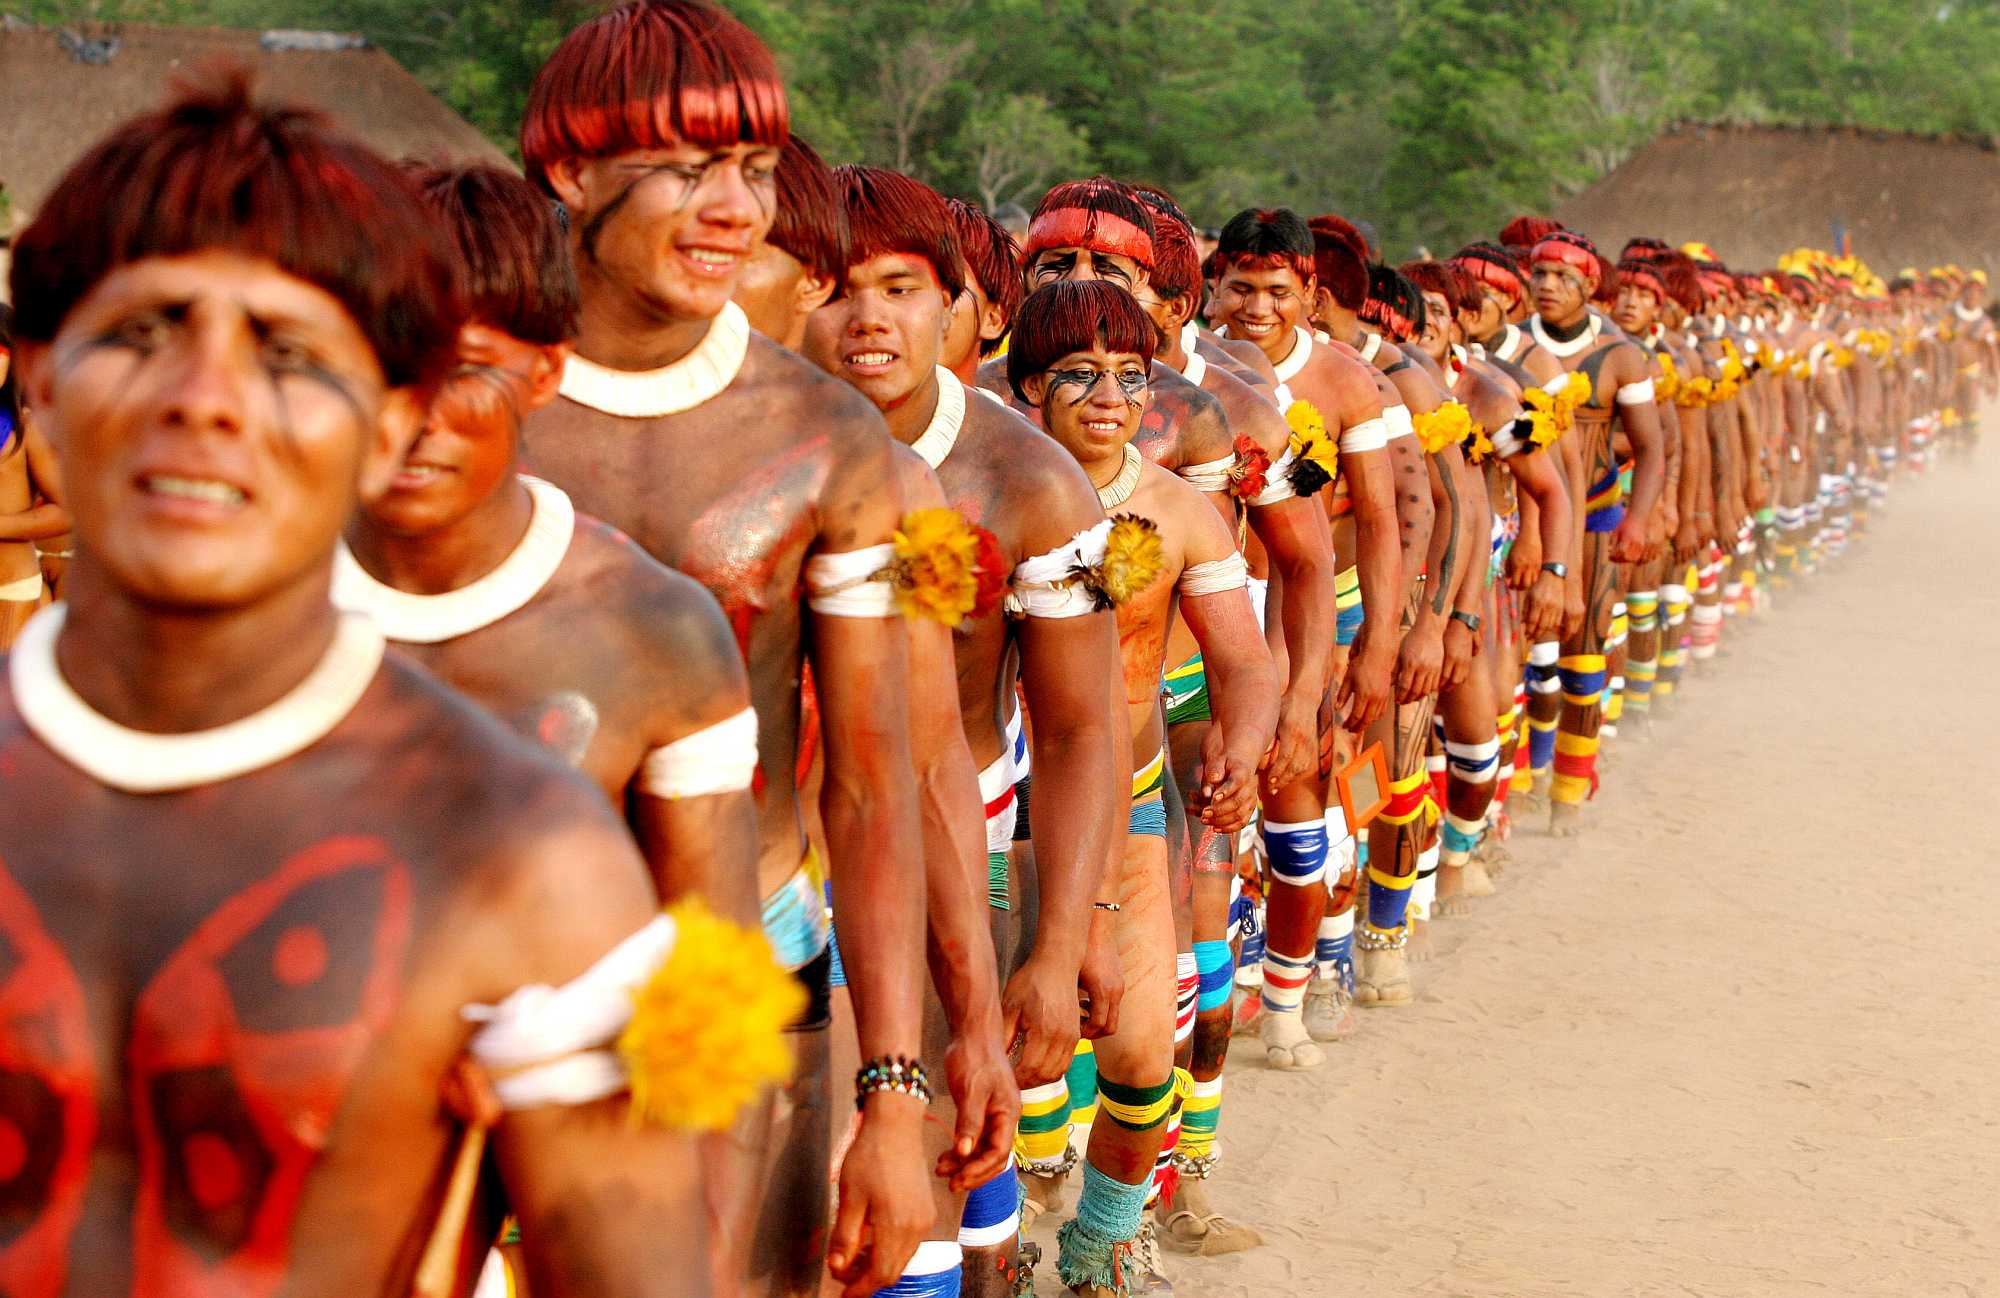 Brazilian Indians From The Xingu Park In Amazon Celebrating Kuarup Festival